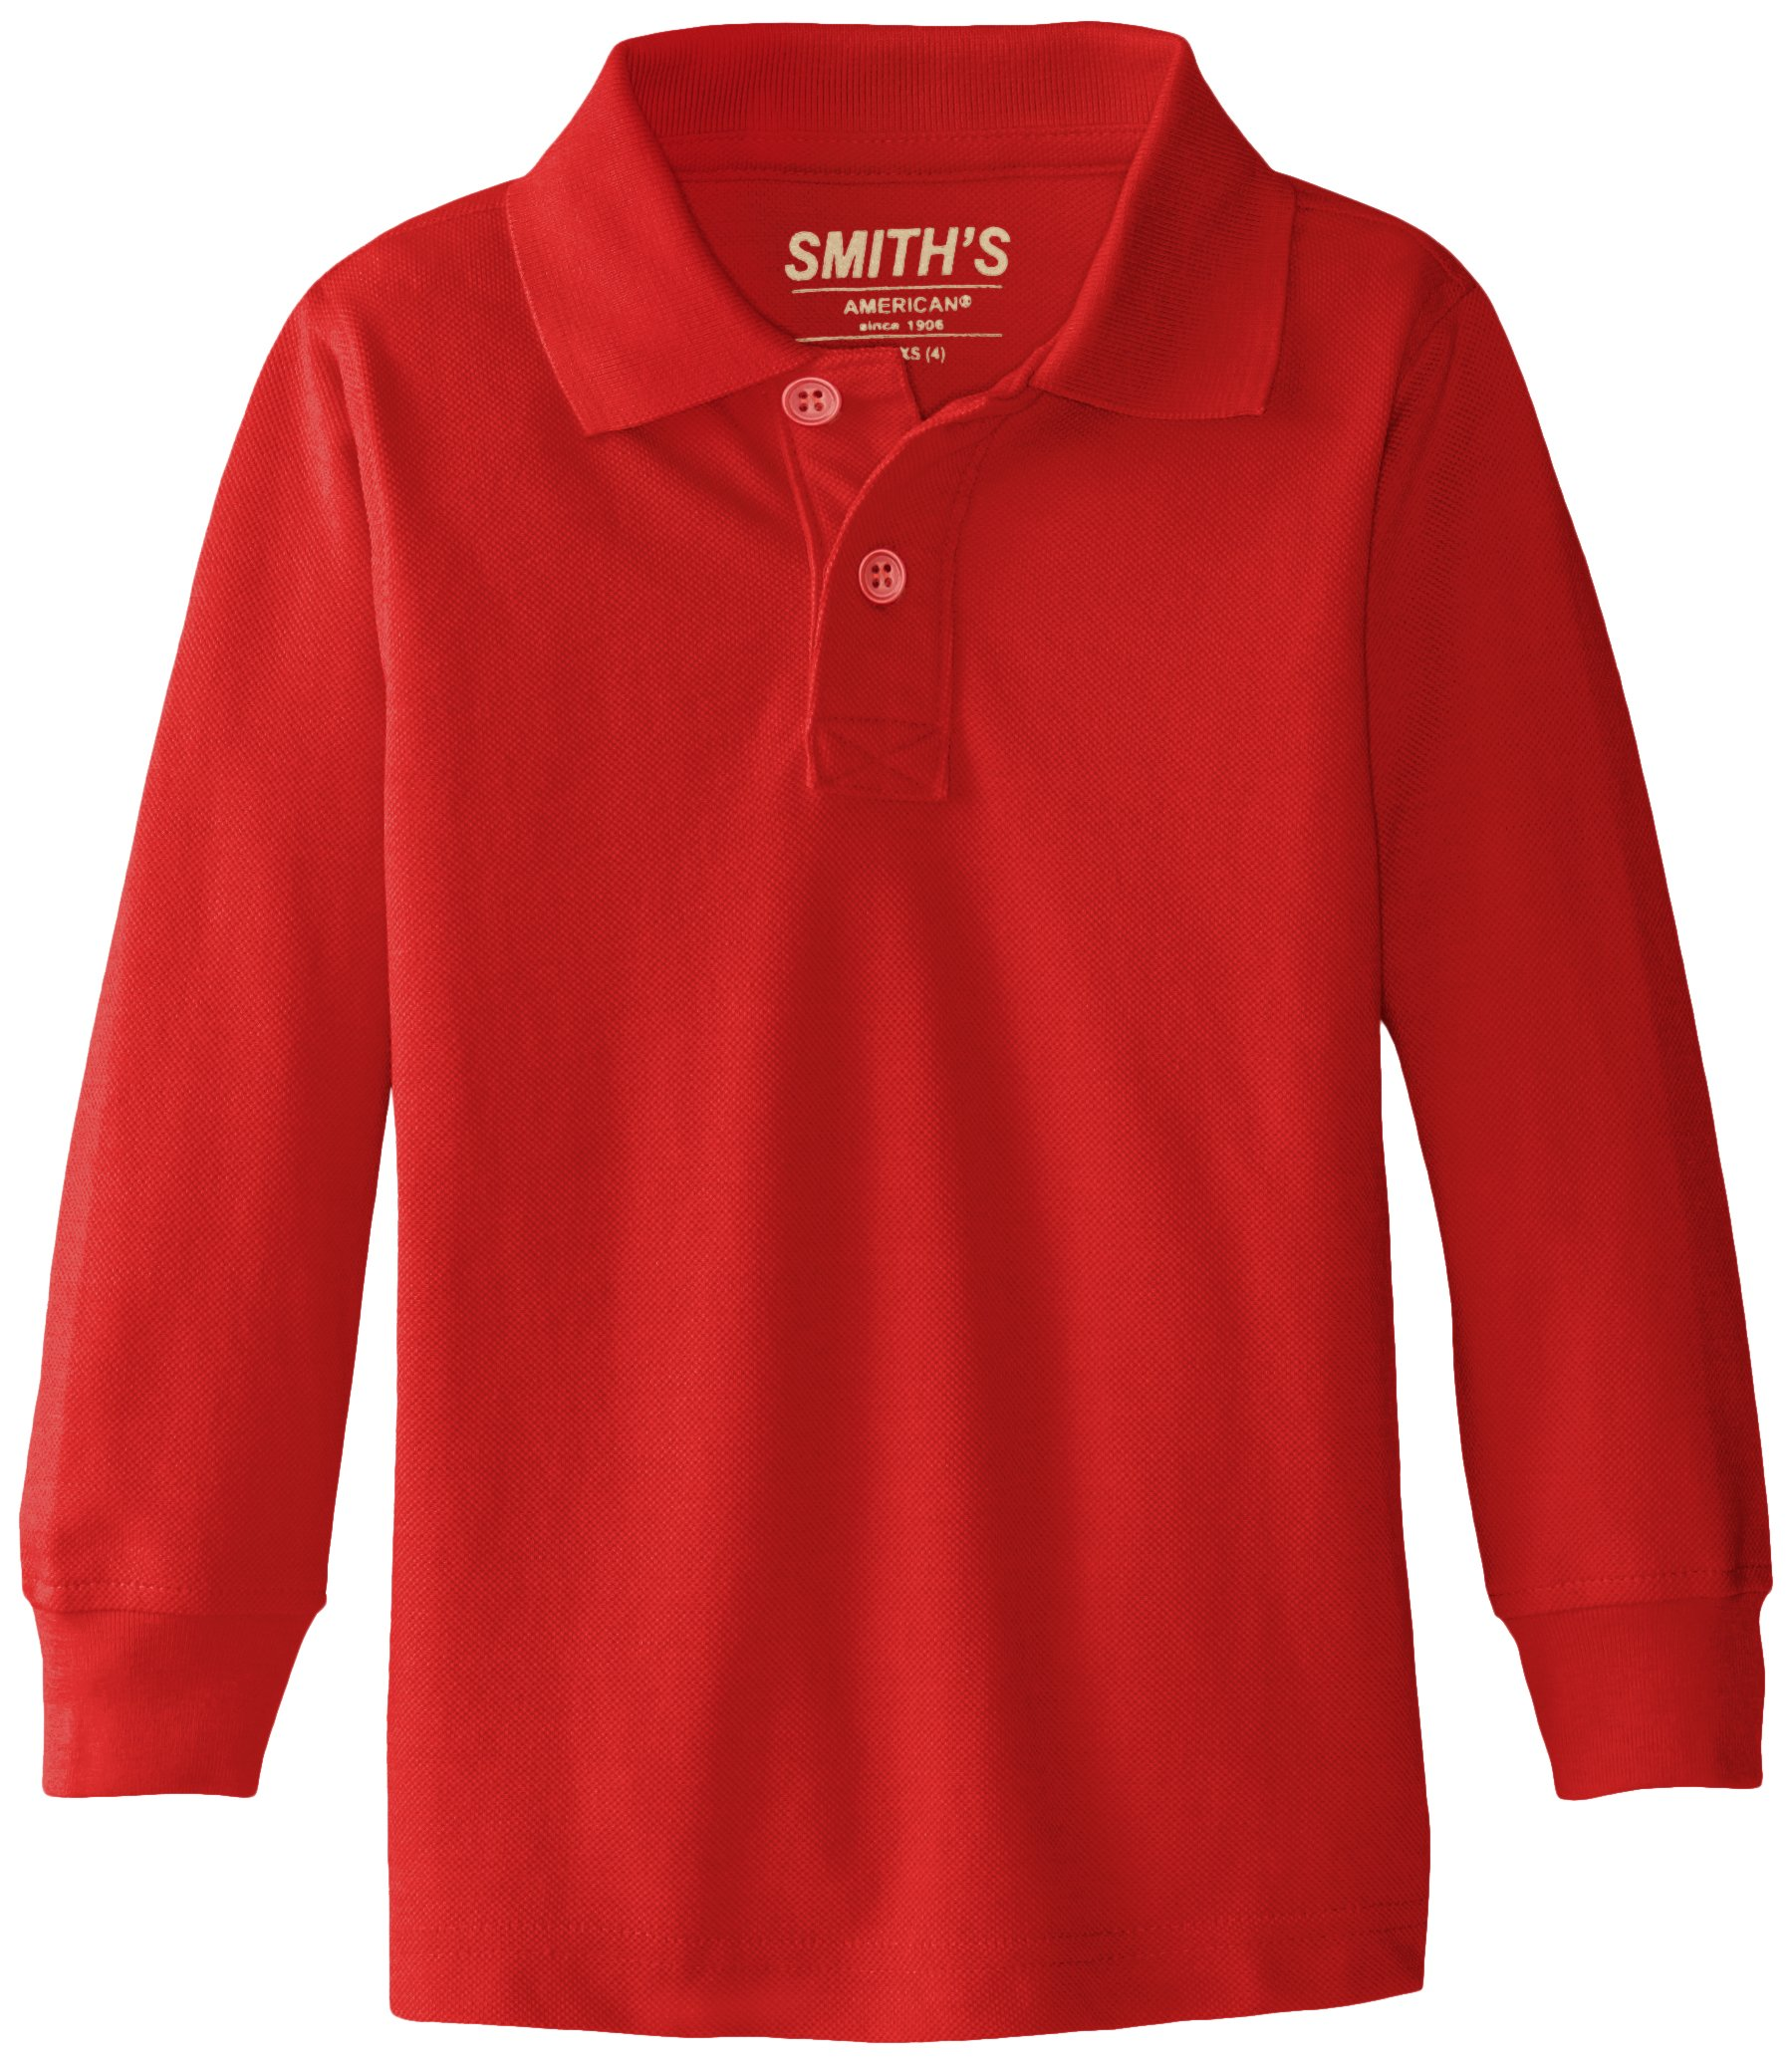 Smith's American Little Boys' Long Sleeve Polo, Red, XX-Small